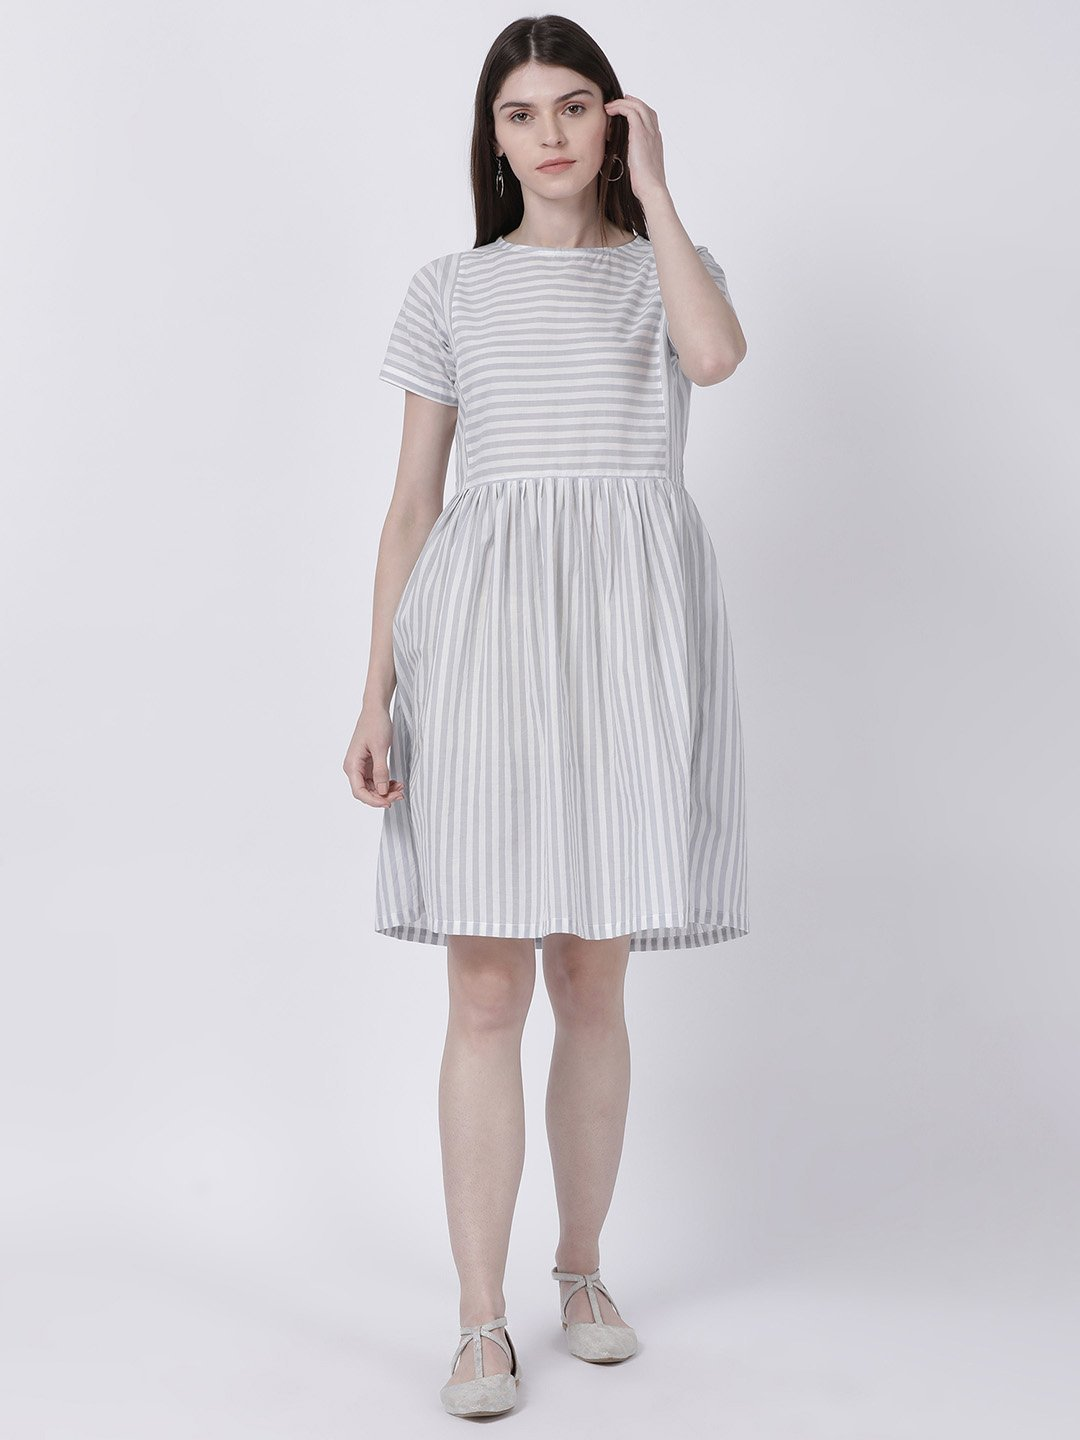 Grey Striped Shift Dress - Rossbelle